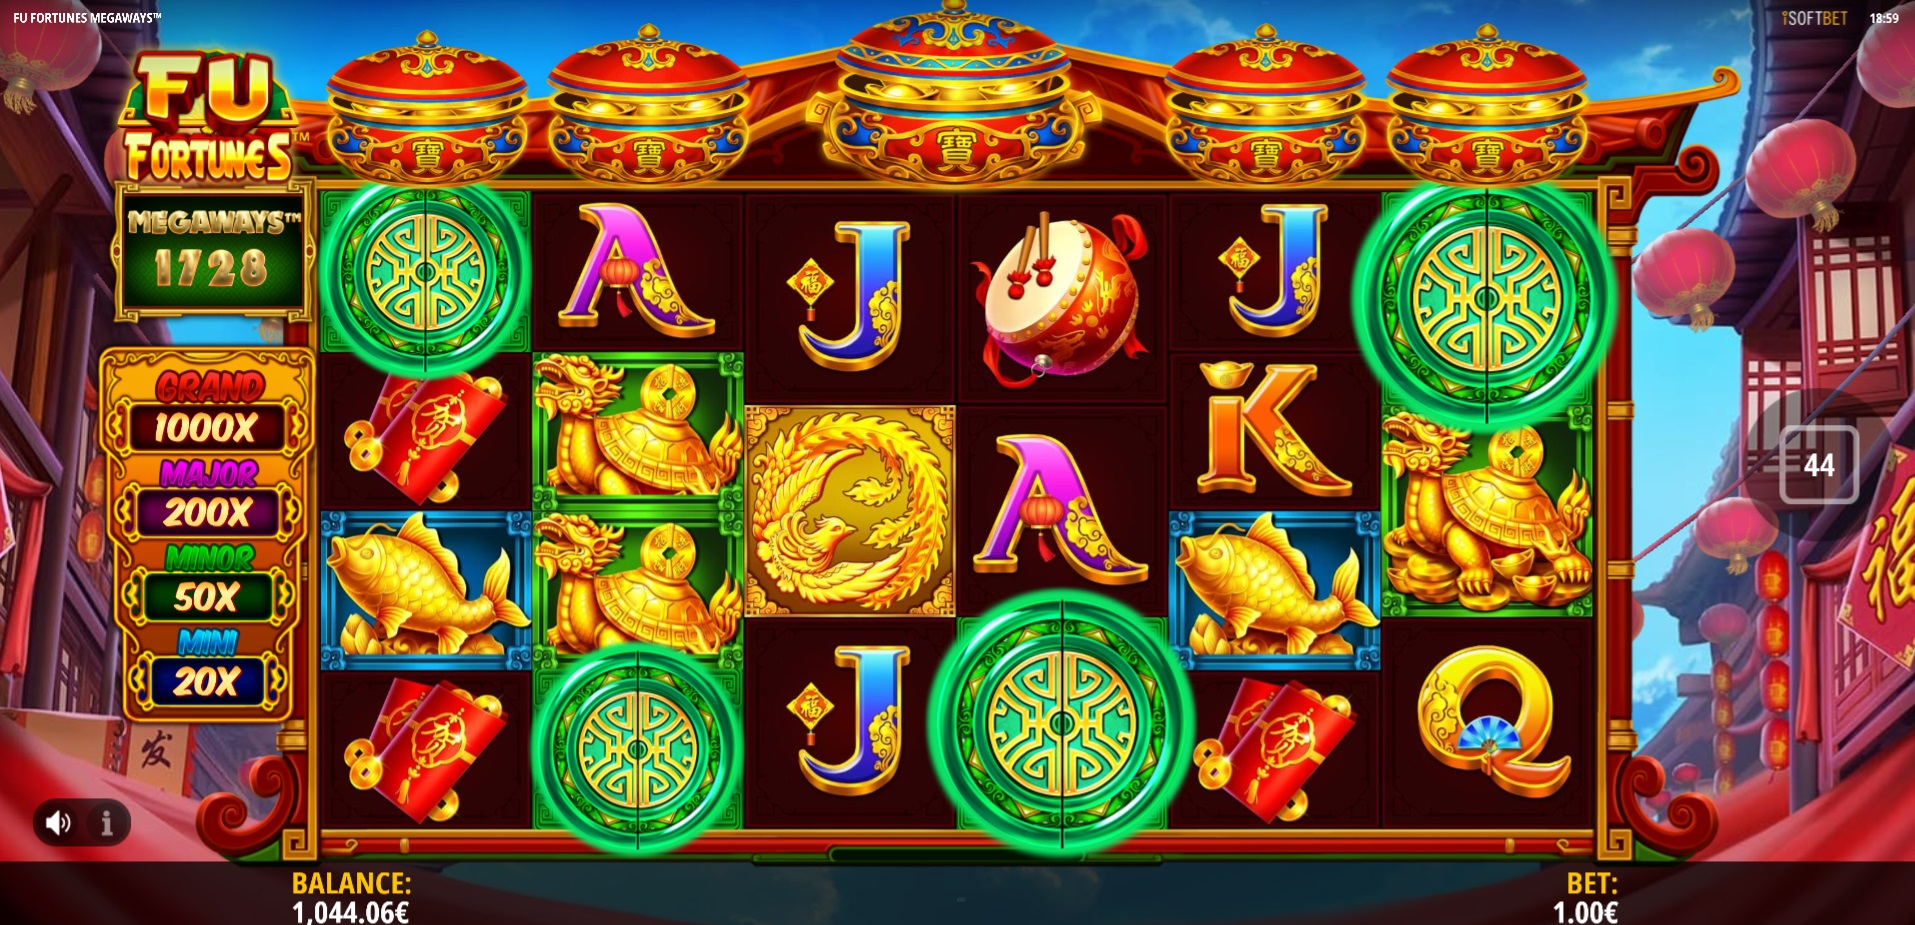 How to win big in Fu Fortunes Megaways – Free Spins